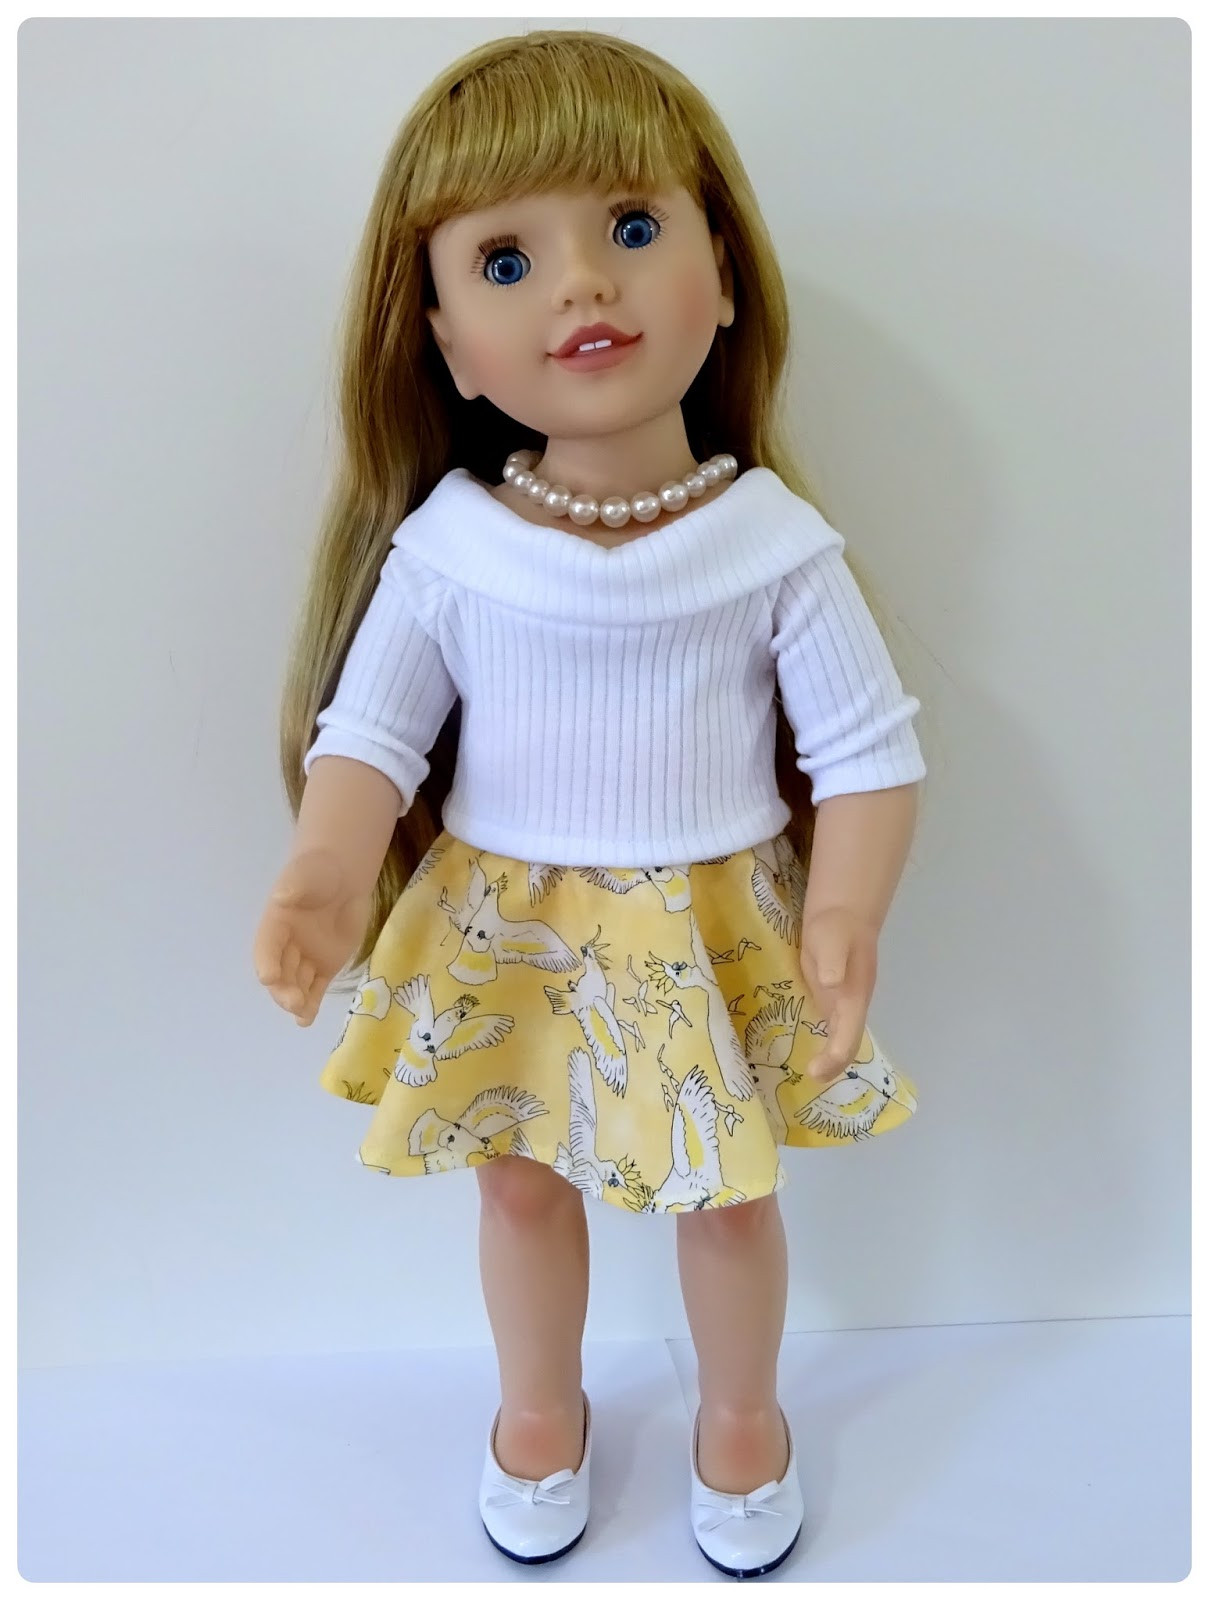 Luxury Doll Clothes Patterns by Valspierssews Skater Skirt Doll American Girl Doll Clothes Patterns Of Incredible 40 Images American Girl Doll Clothes Patterns